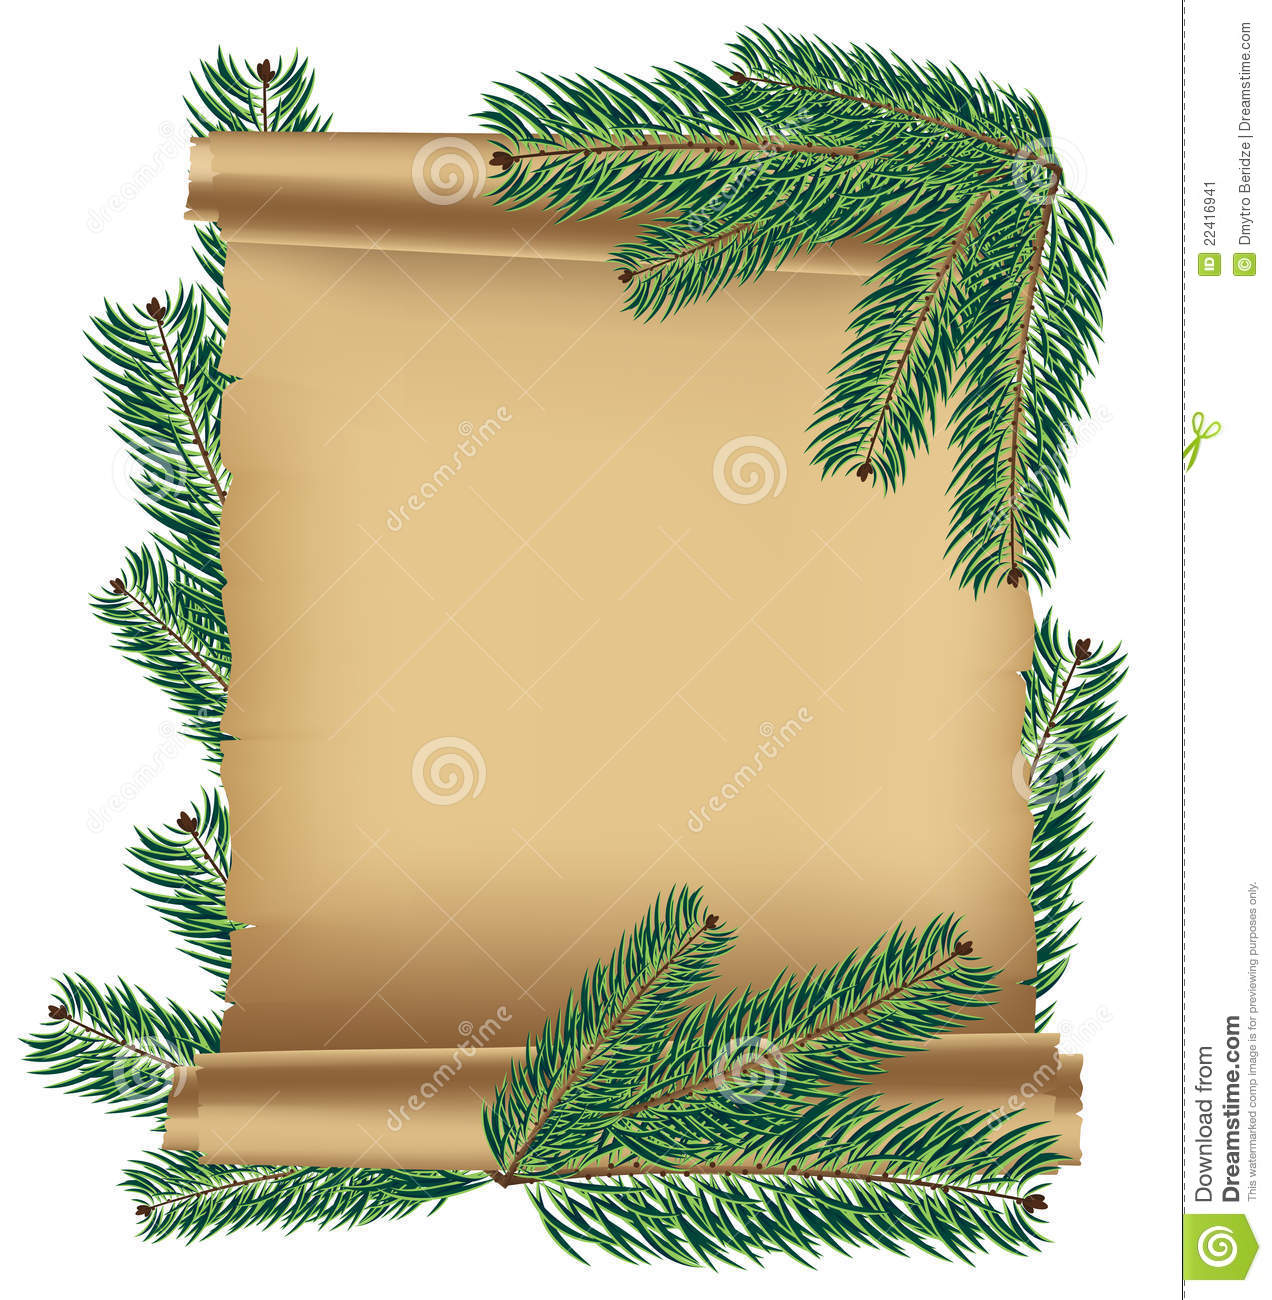 Ancient Scroll: Ancient Scroll Stock Vector. Image Of Blank, Announcement